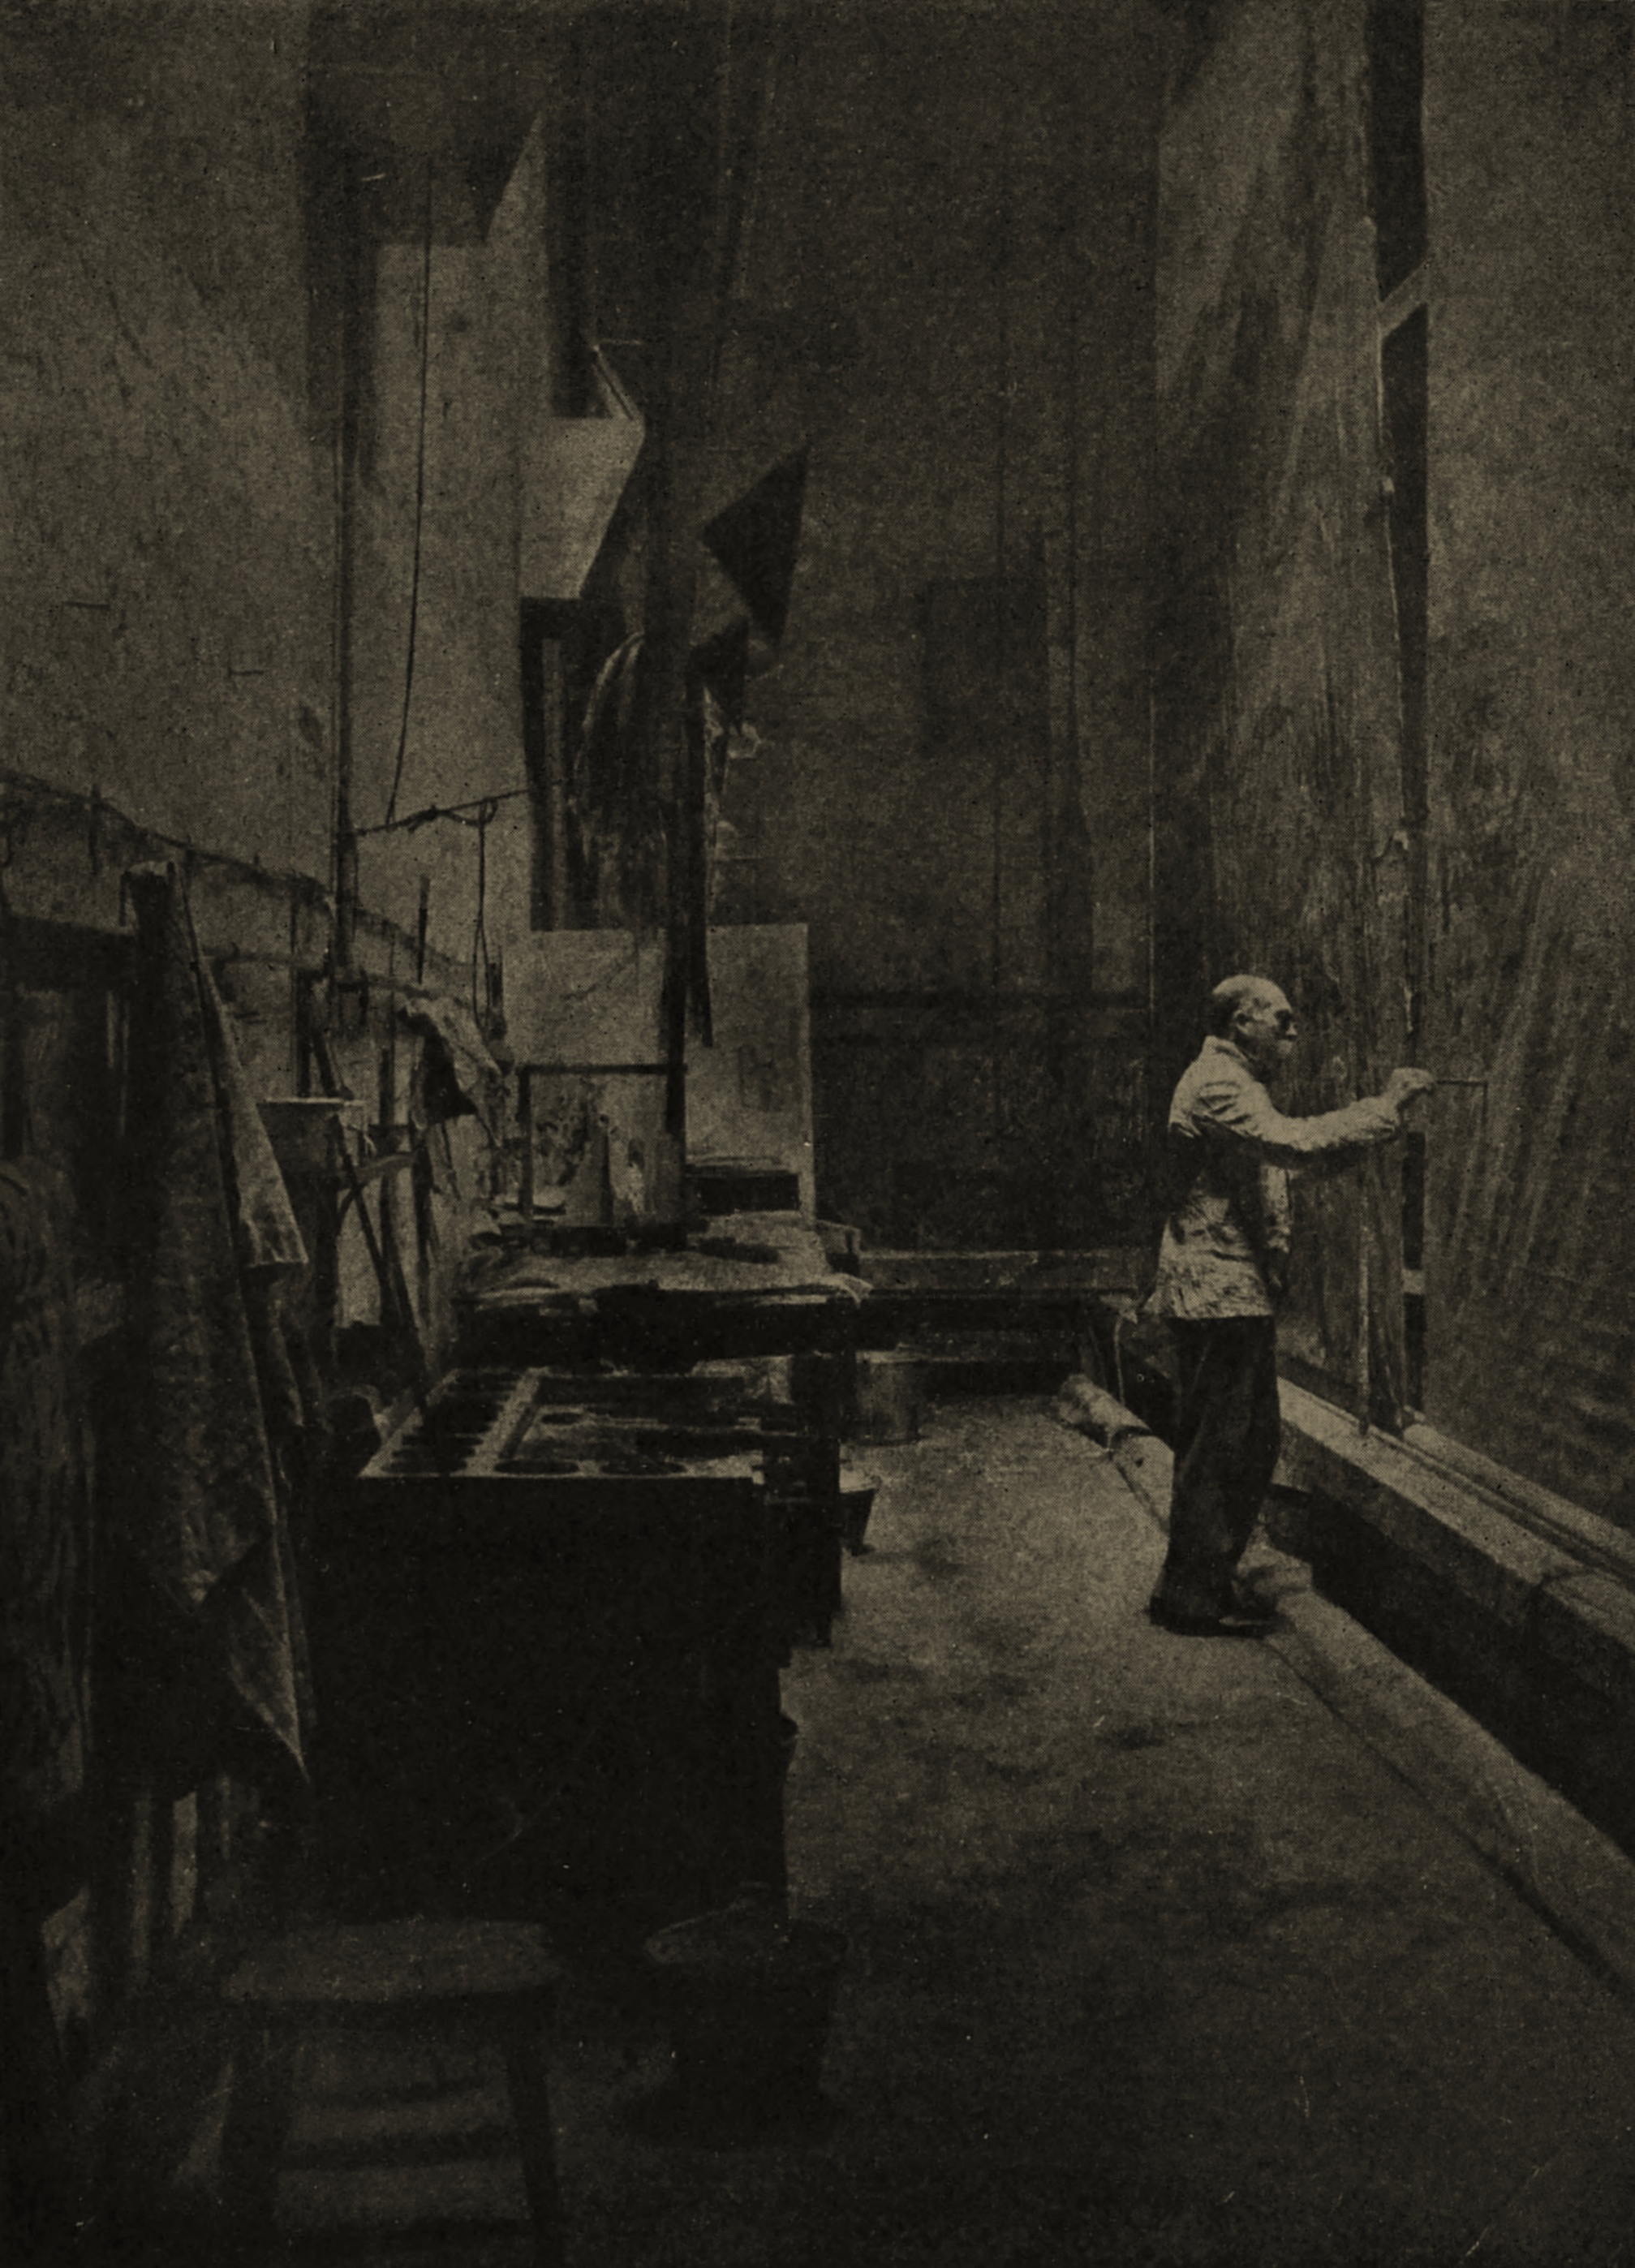 The Scene Painter by Arthur Elliott about 1908